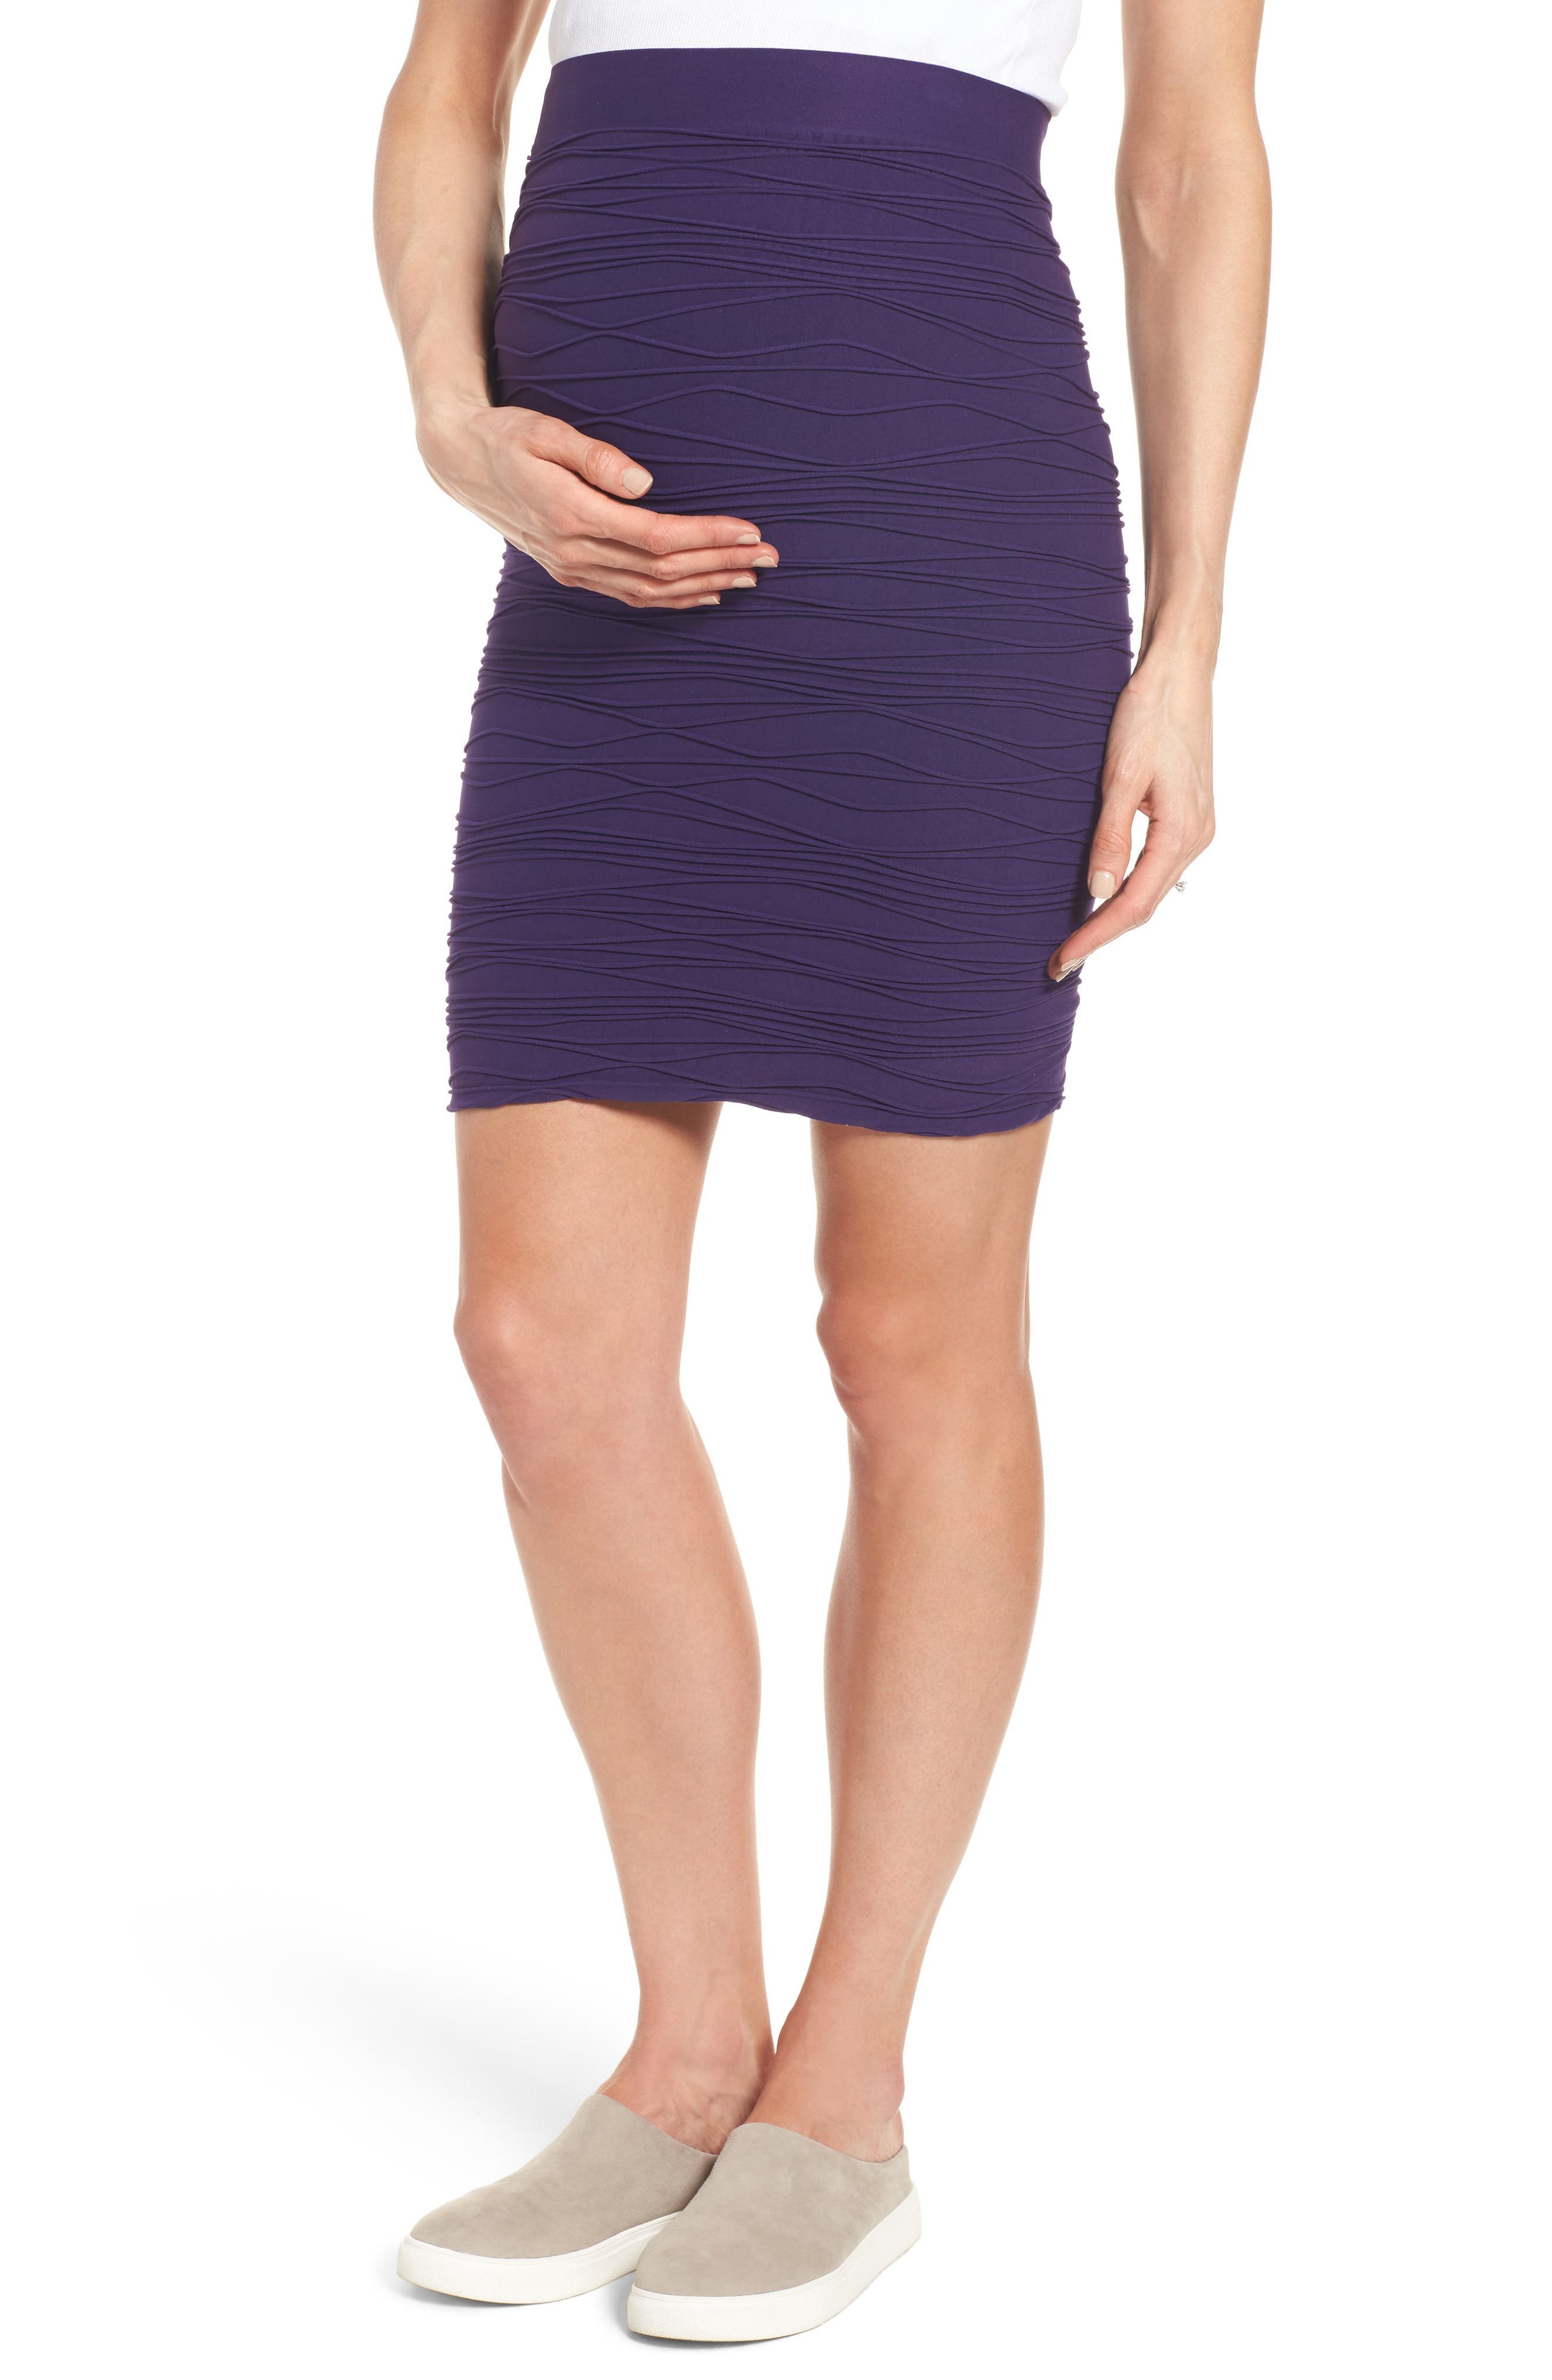 Tees by Tina 'Line' Maternity Skirt